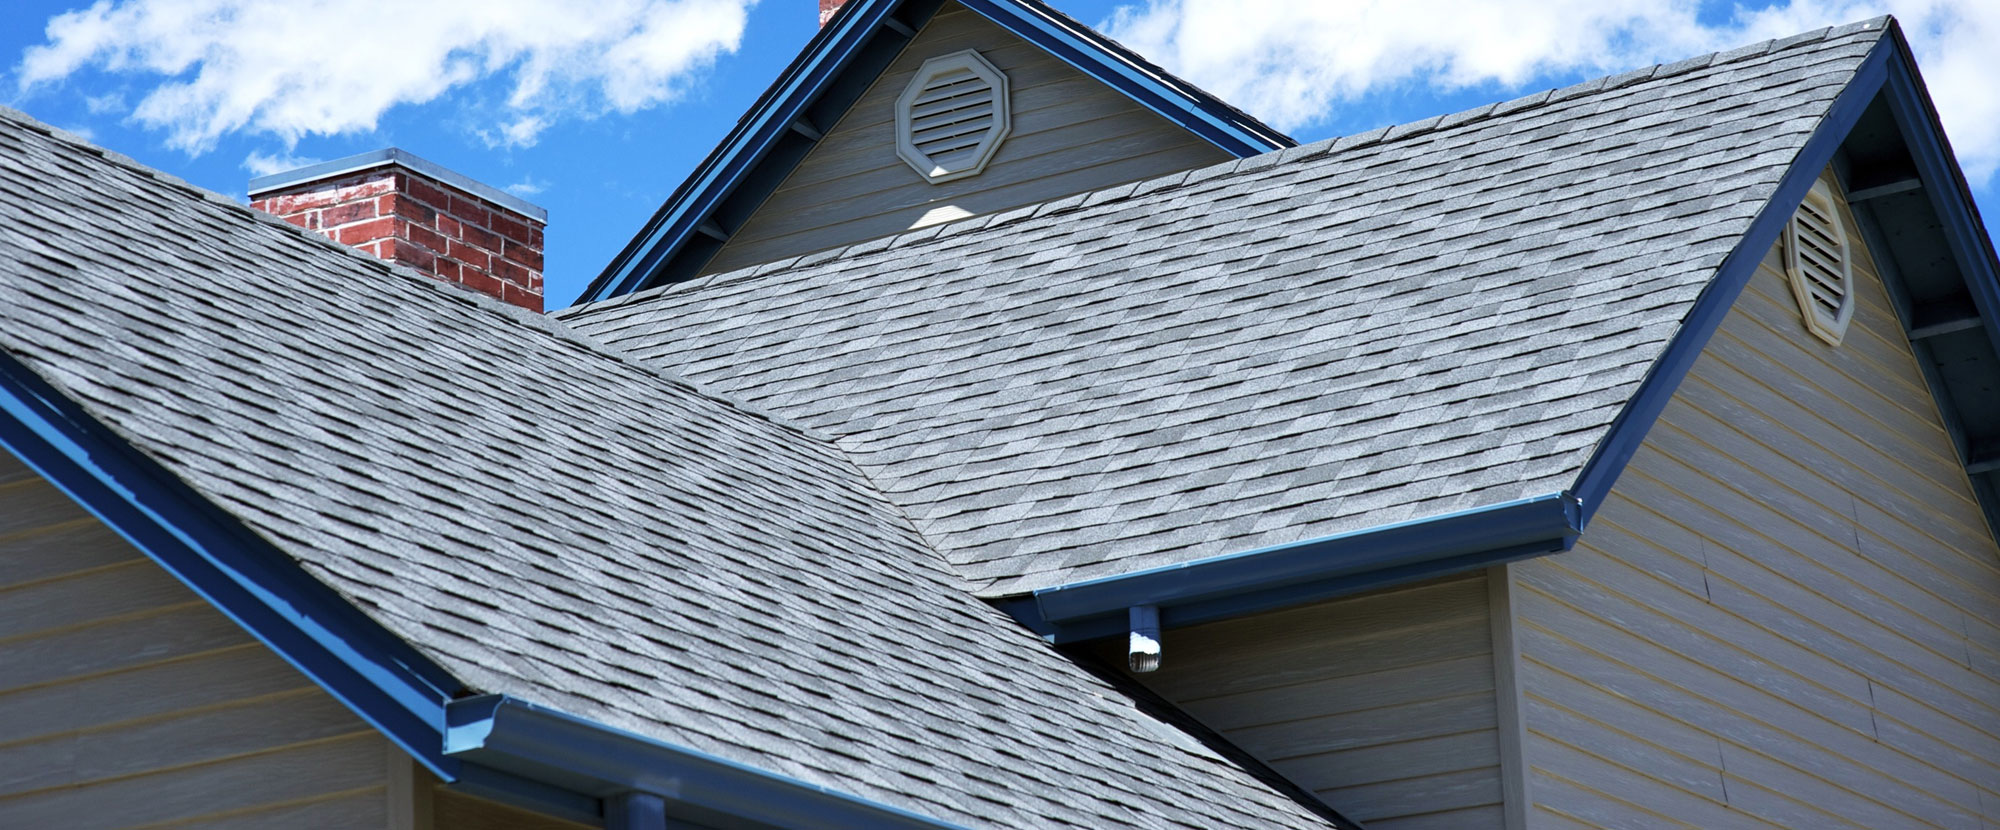 Paramount Roofing & Constructions